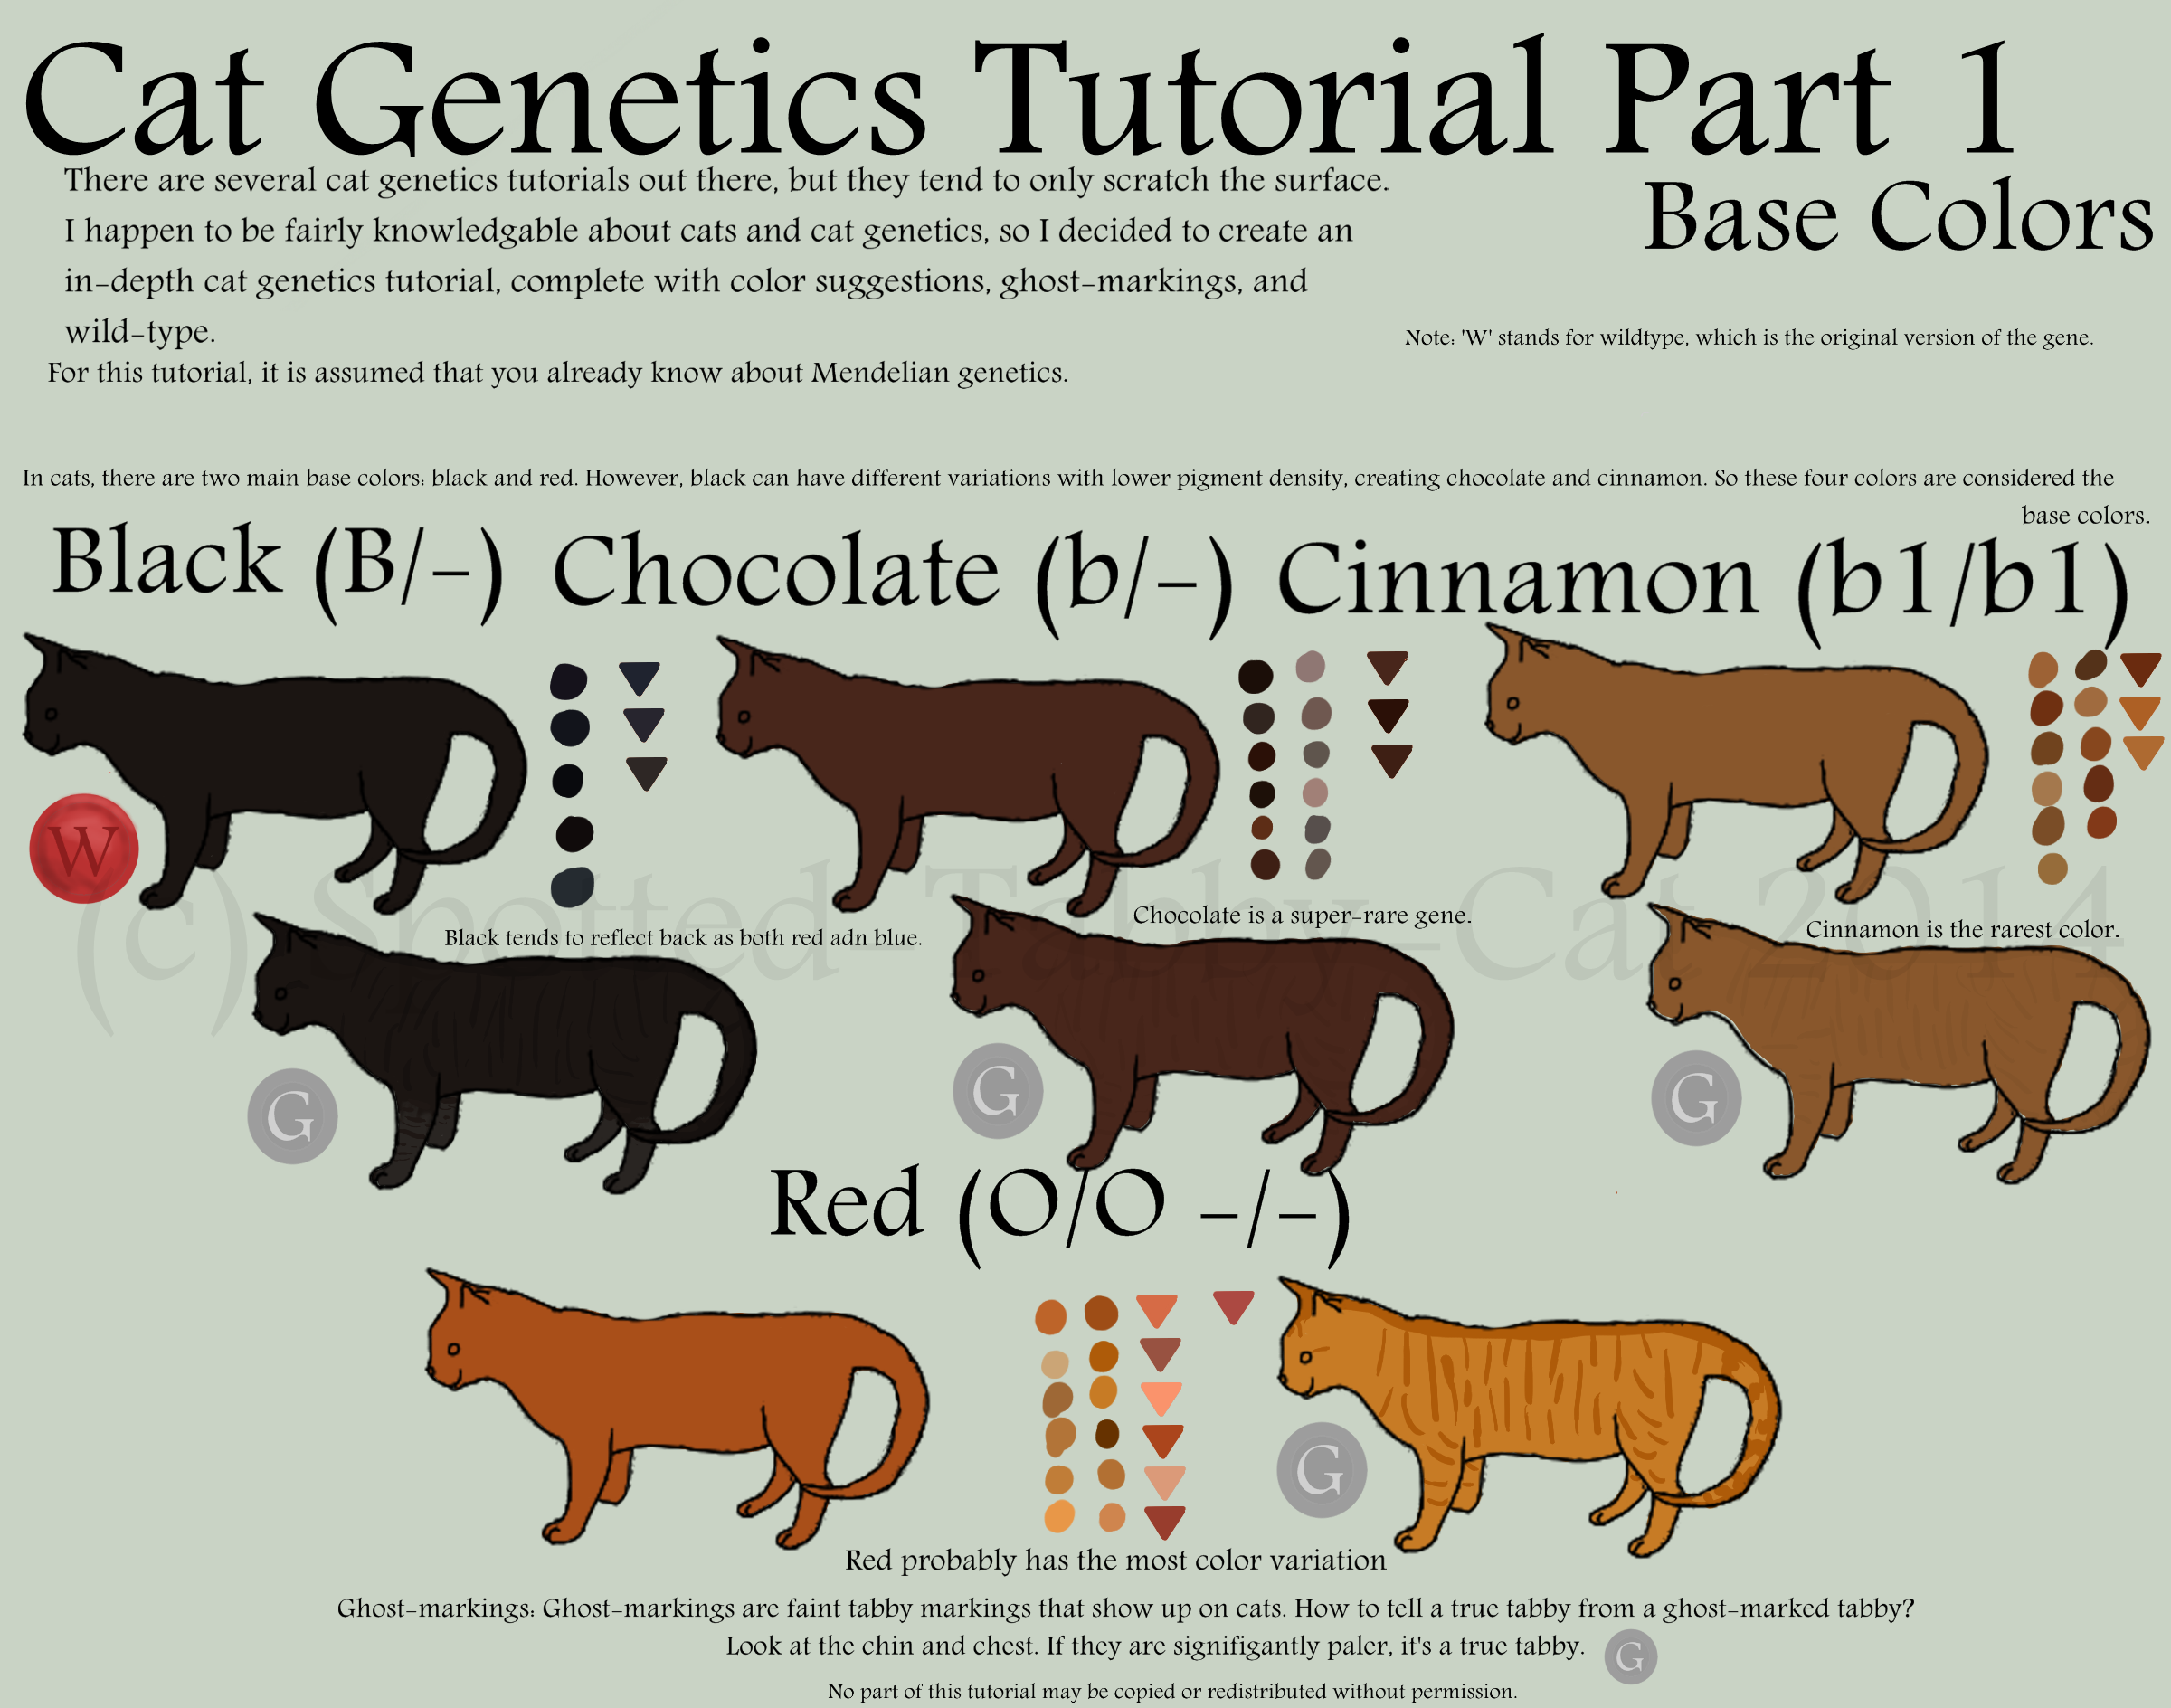 Cat Genetics Tutorial Part 1 Base Colors By Spotted Tabby Cat On Deviantart